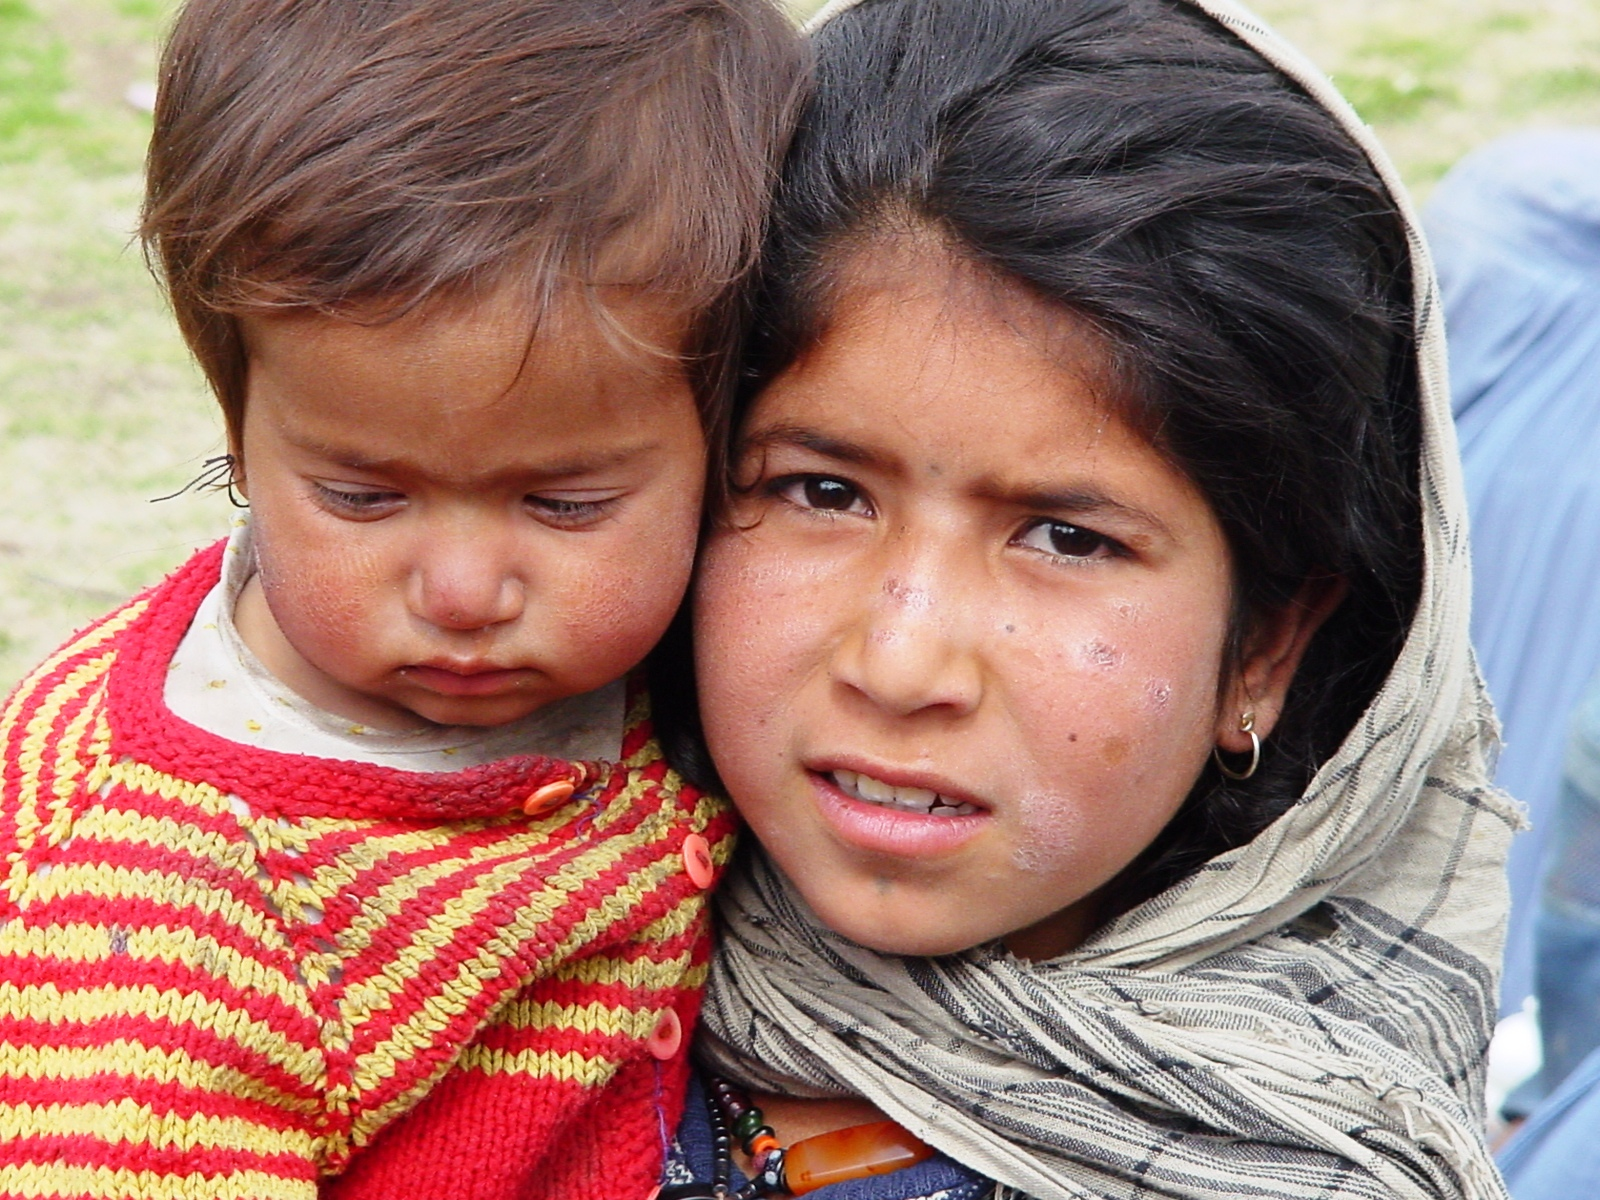 A little girl holding her baby brother with dirt on their faces.